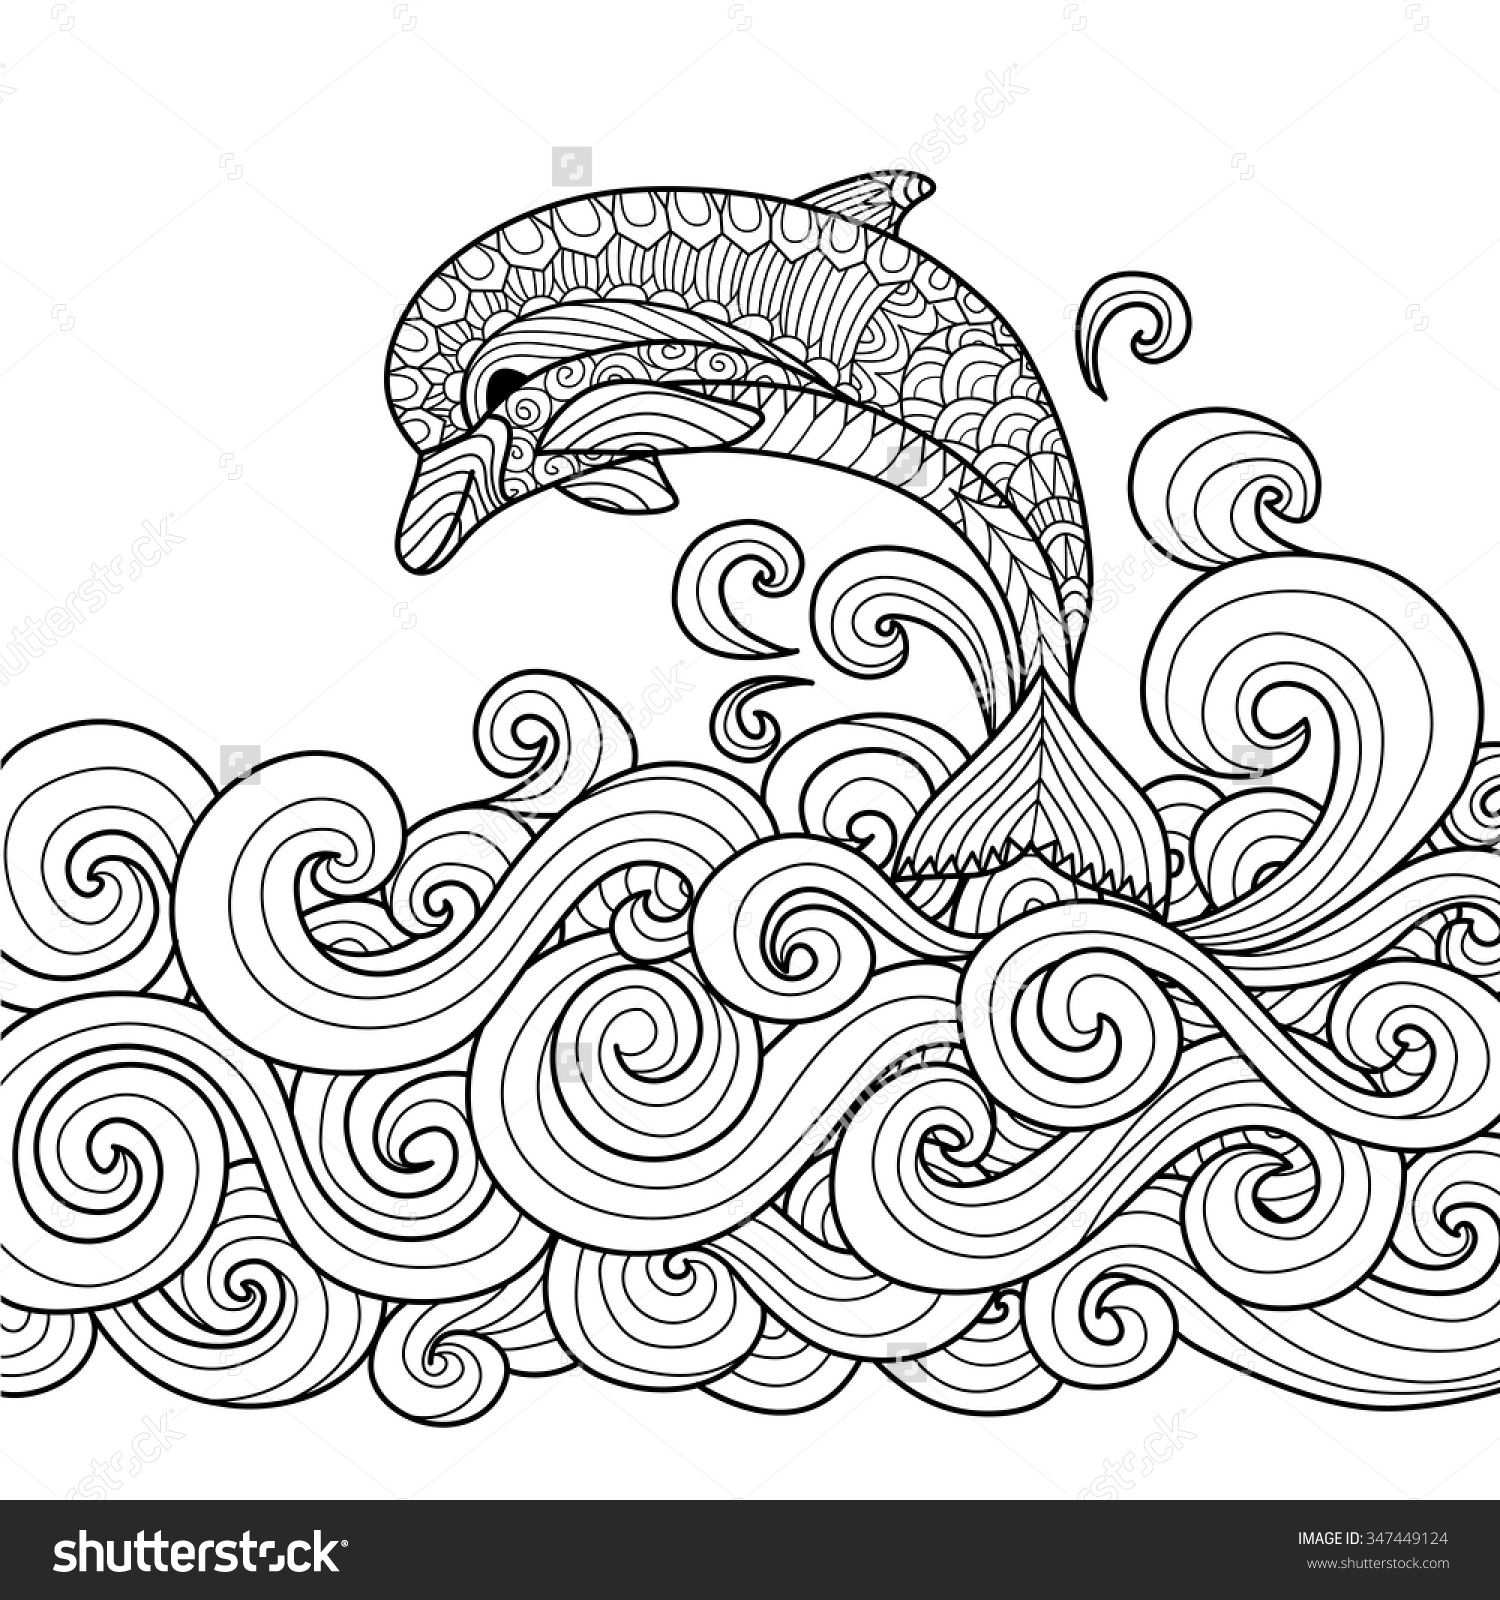 ocean waves coloring pages for adults